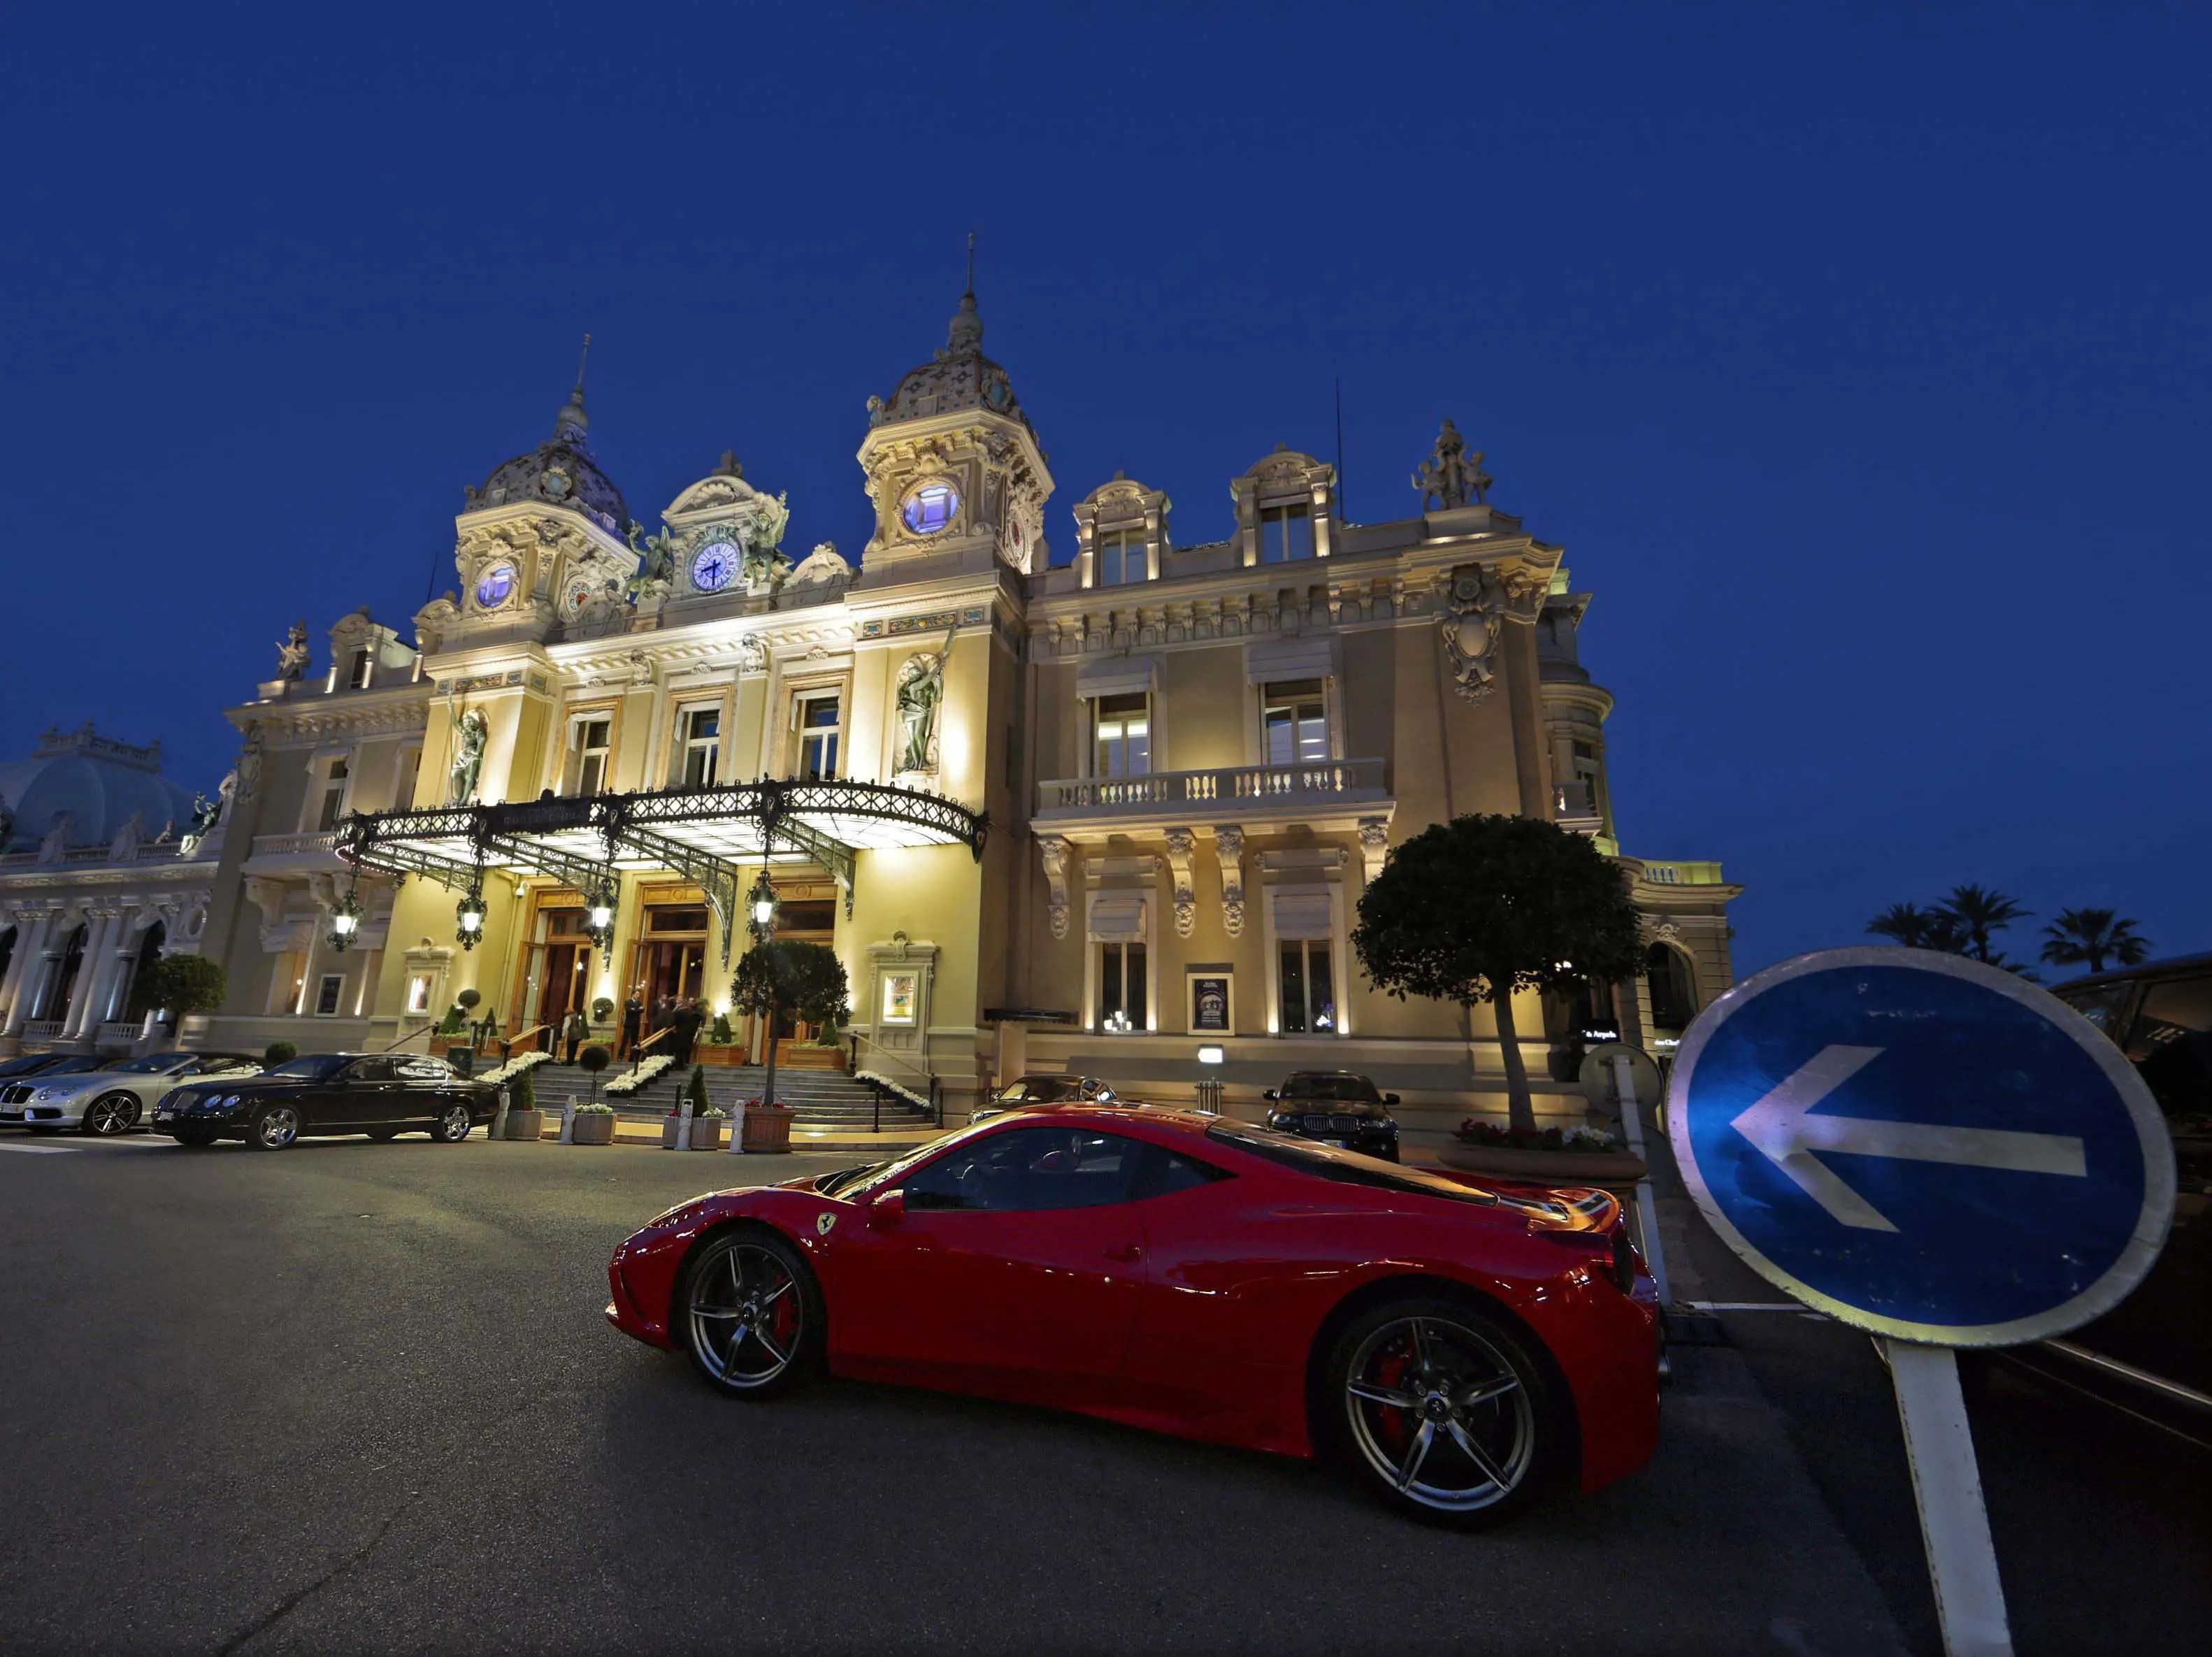 Play a hand of blackjack at the Casino de Monaco in Monte Carlo.